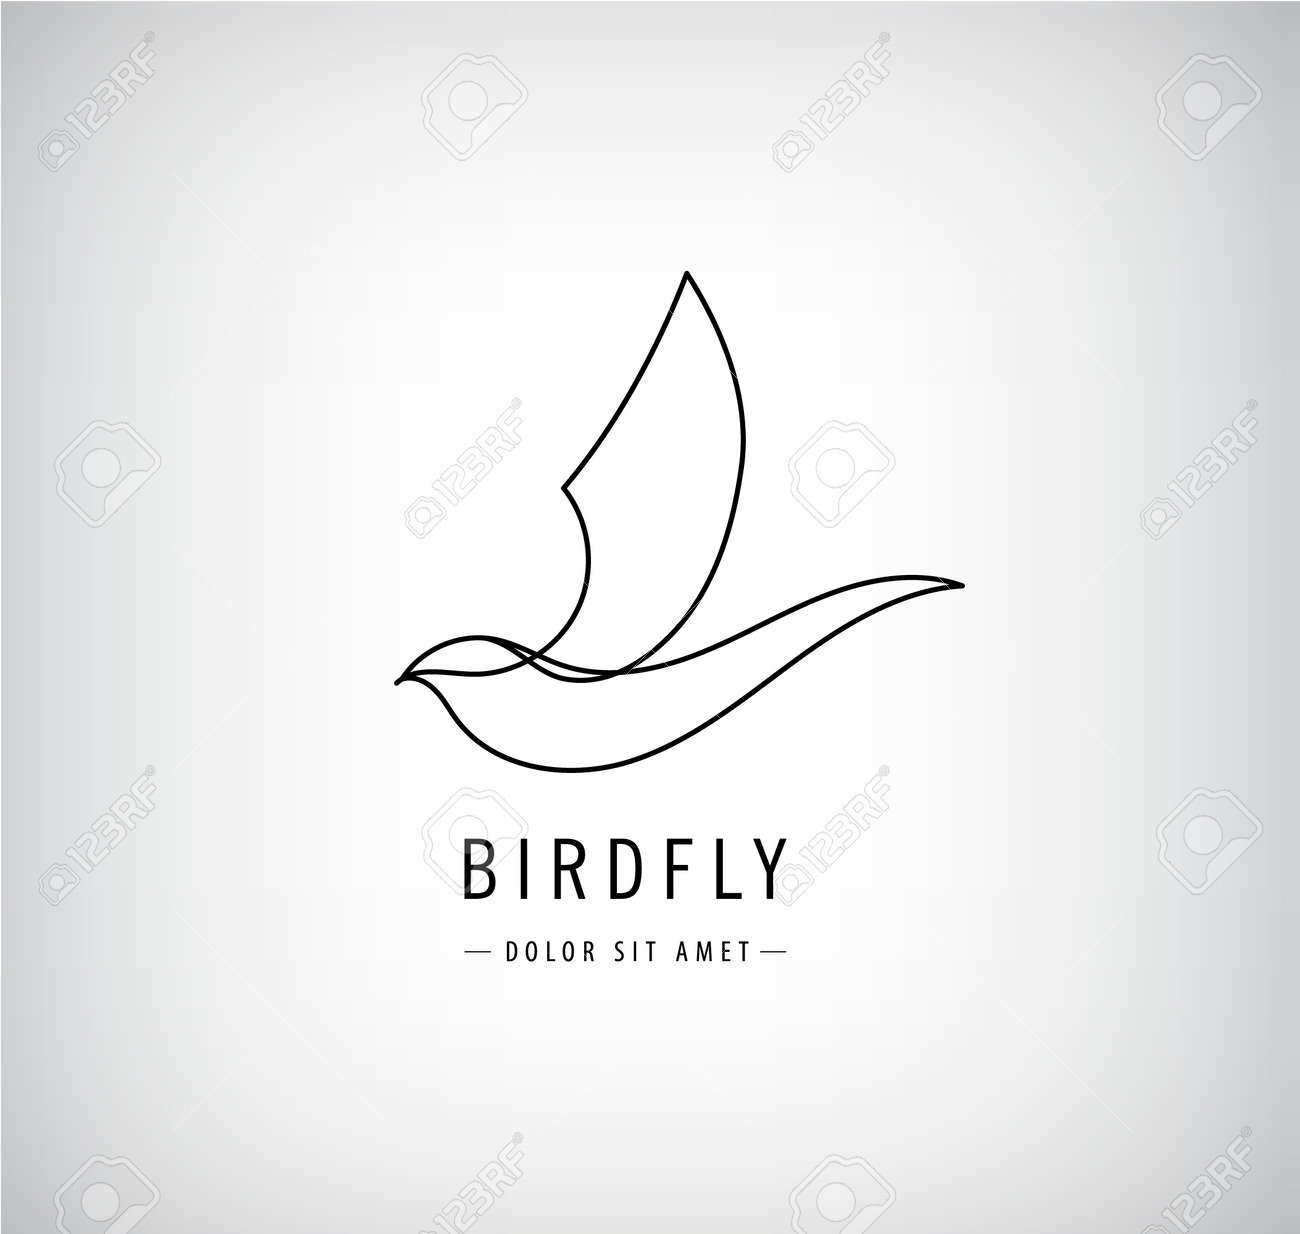 Vector one line bird logo, flying silhouette, continuous monoline concept, abstract icon, sign isolated. Use for print, brand, tatoo, art - 171129377